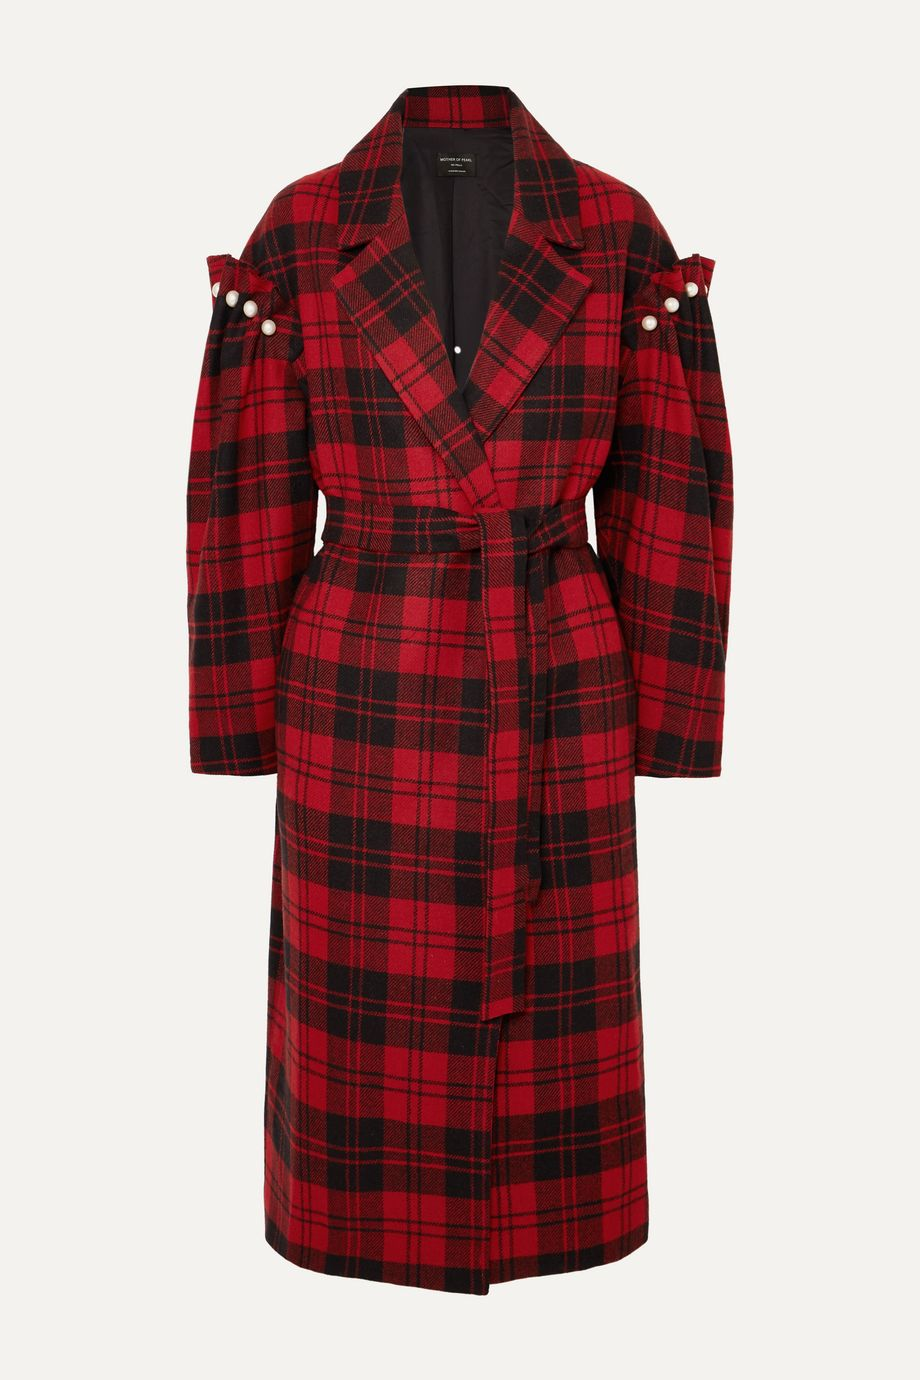 Mother of Pearl + NET SUSTAIN Webb belted faux pearl-embellished checked wool coat